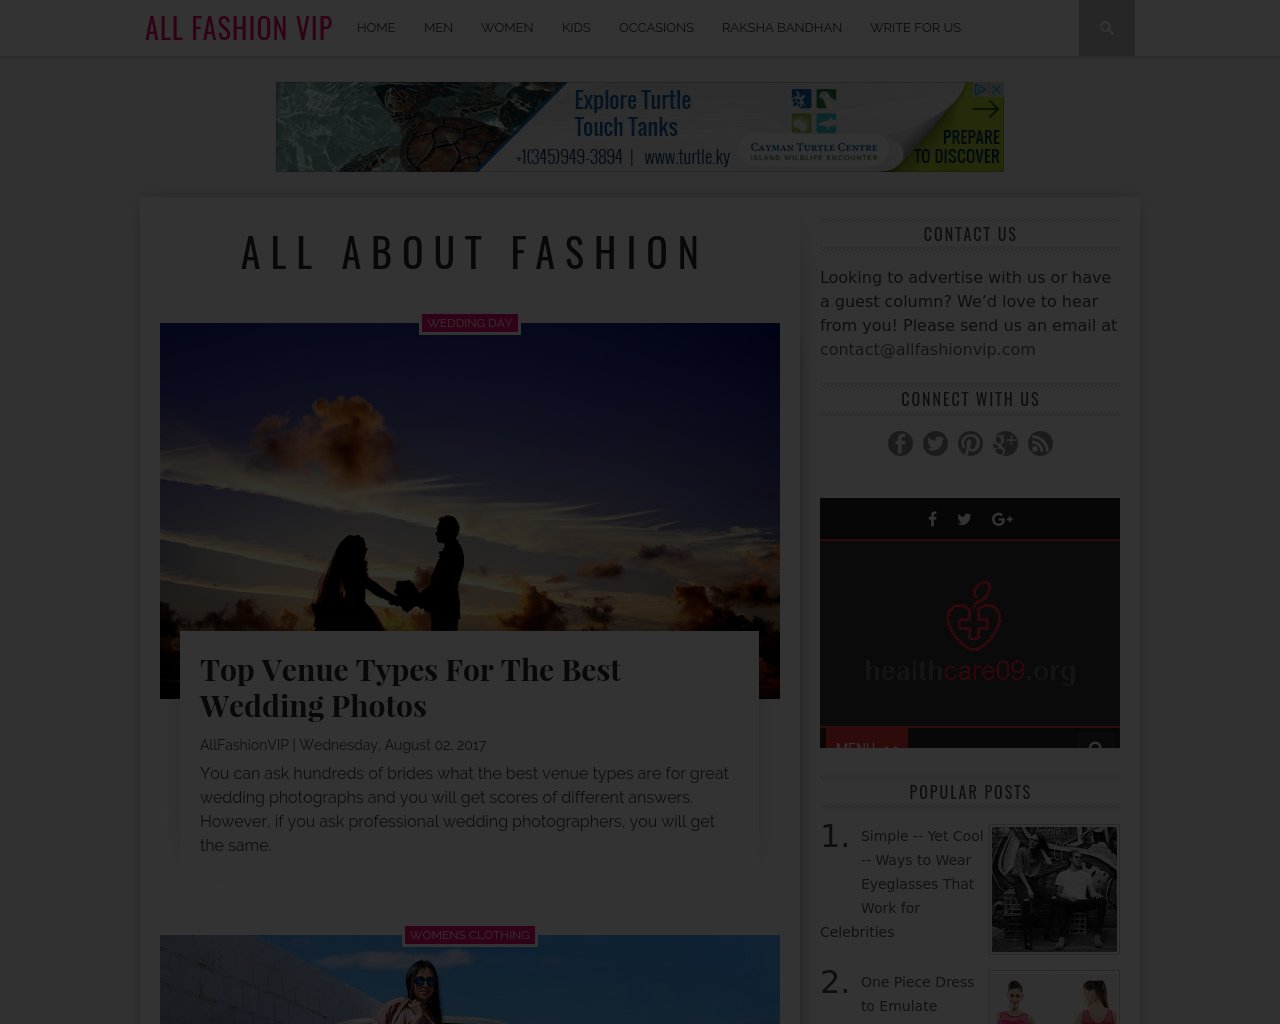 All-Fashion-VIP-Advertising-Reviews-Pricing